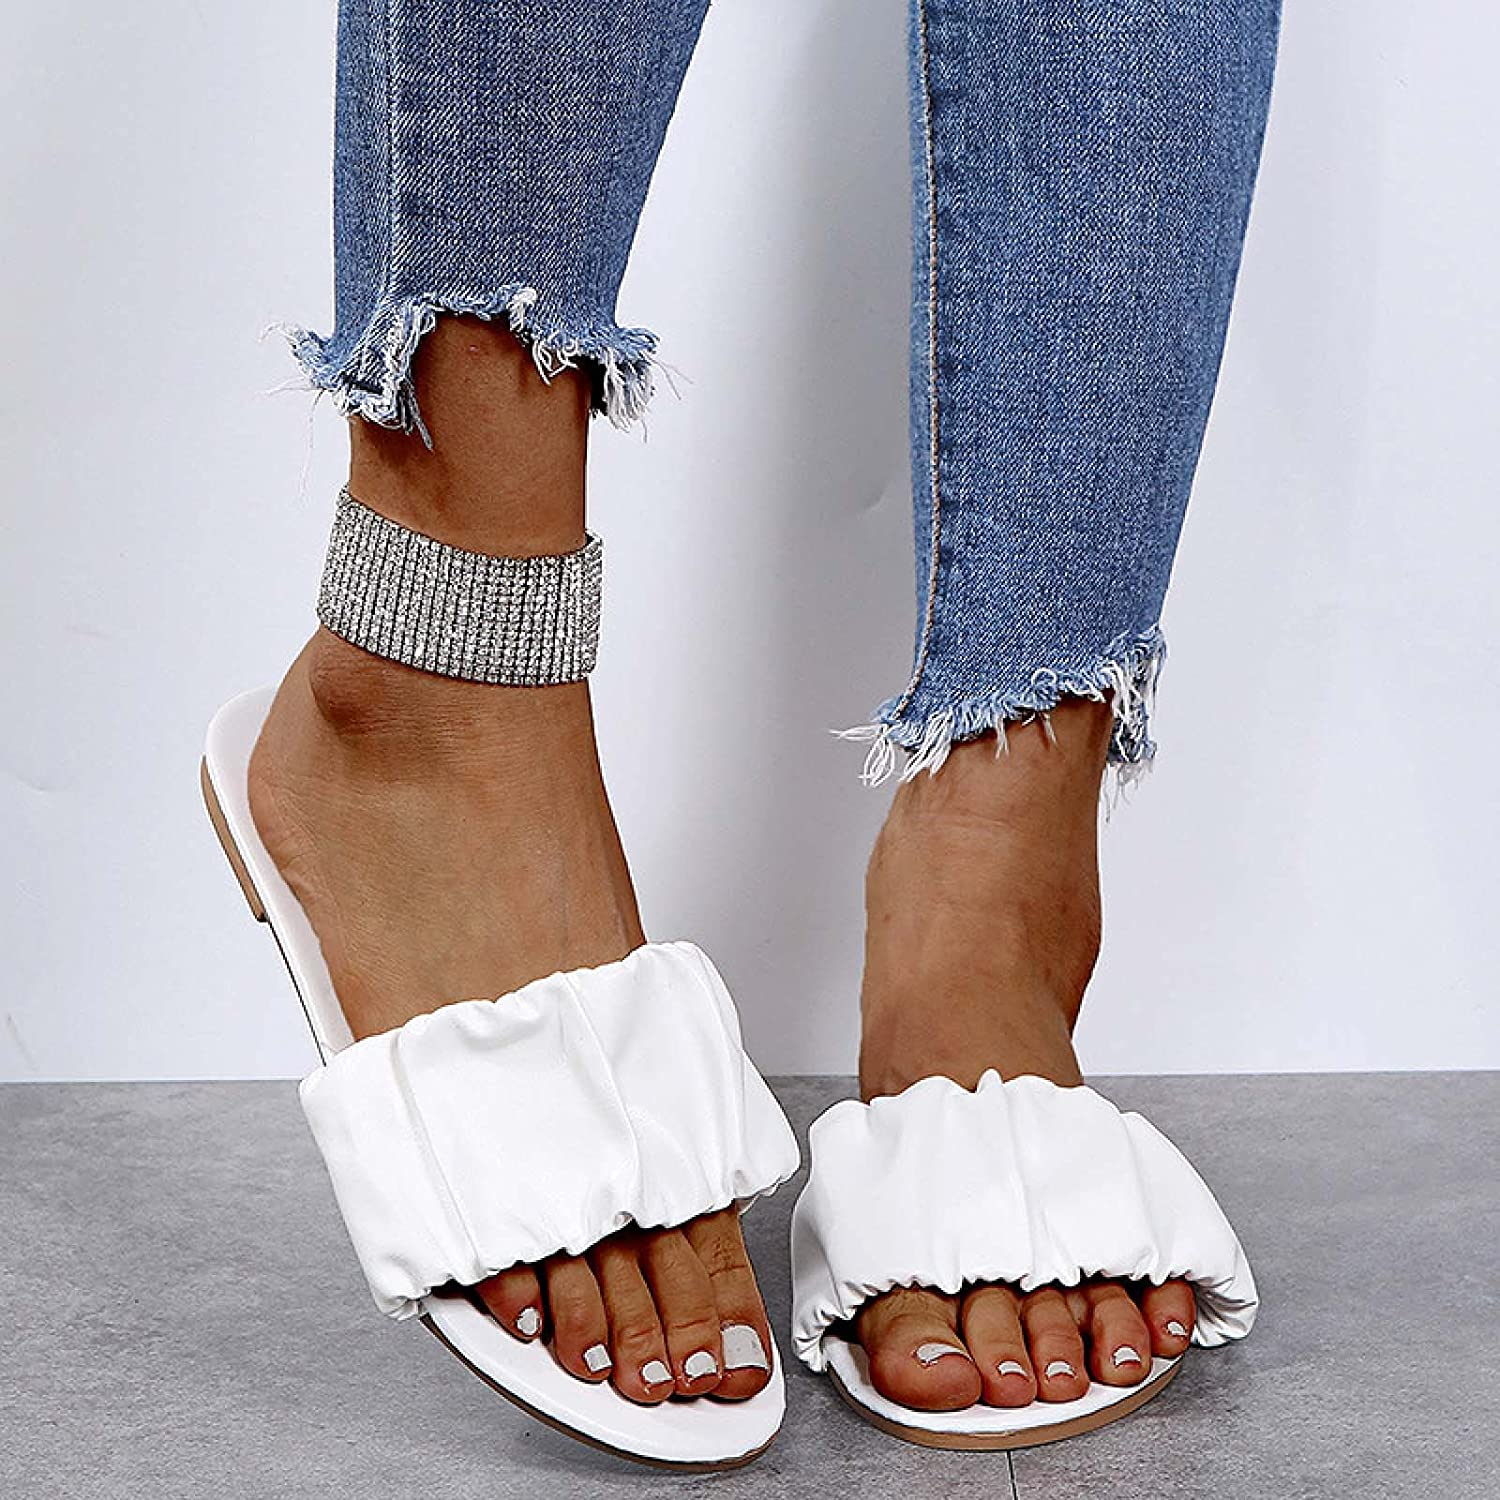 Yamx Open Toe Summer Beach Sandals,Solid Color Slippers Beach Fashion Folds Show Thin Feet Shoes Sandals